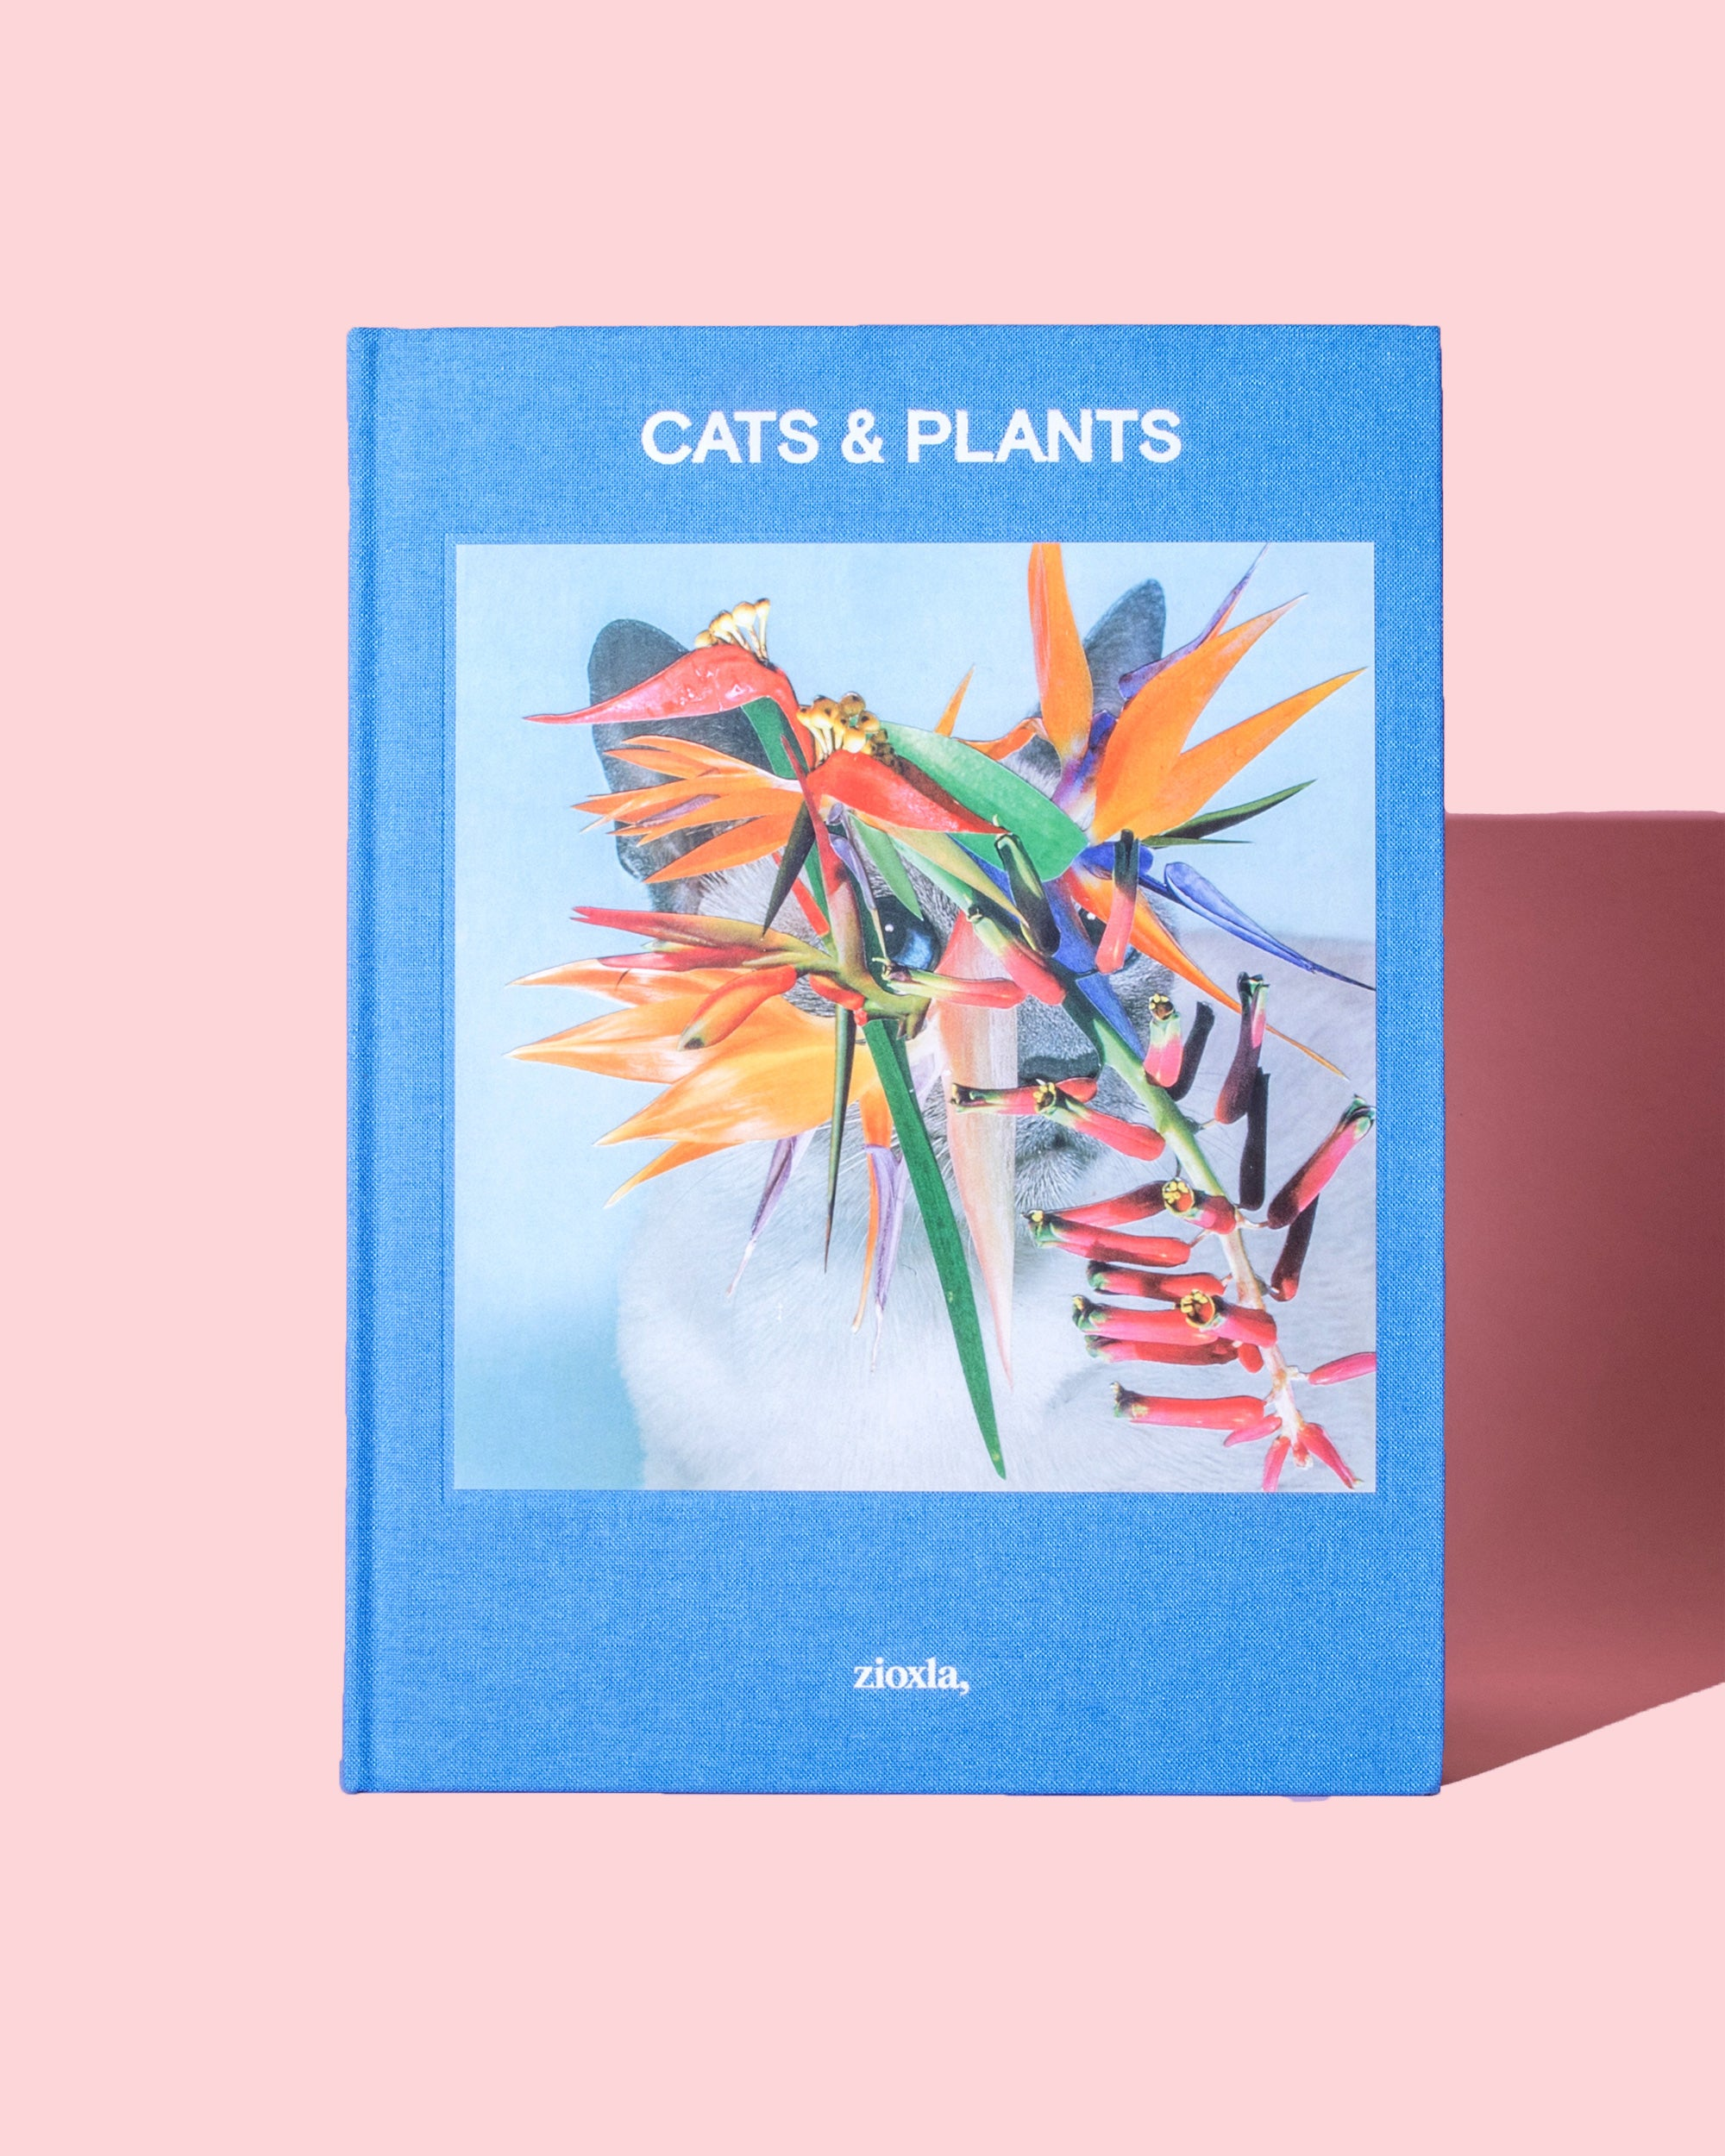 Cats & Plants by Stephen Eichhorn